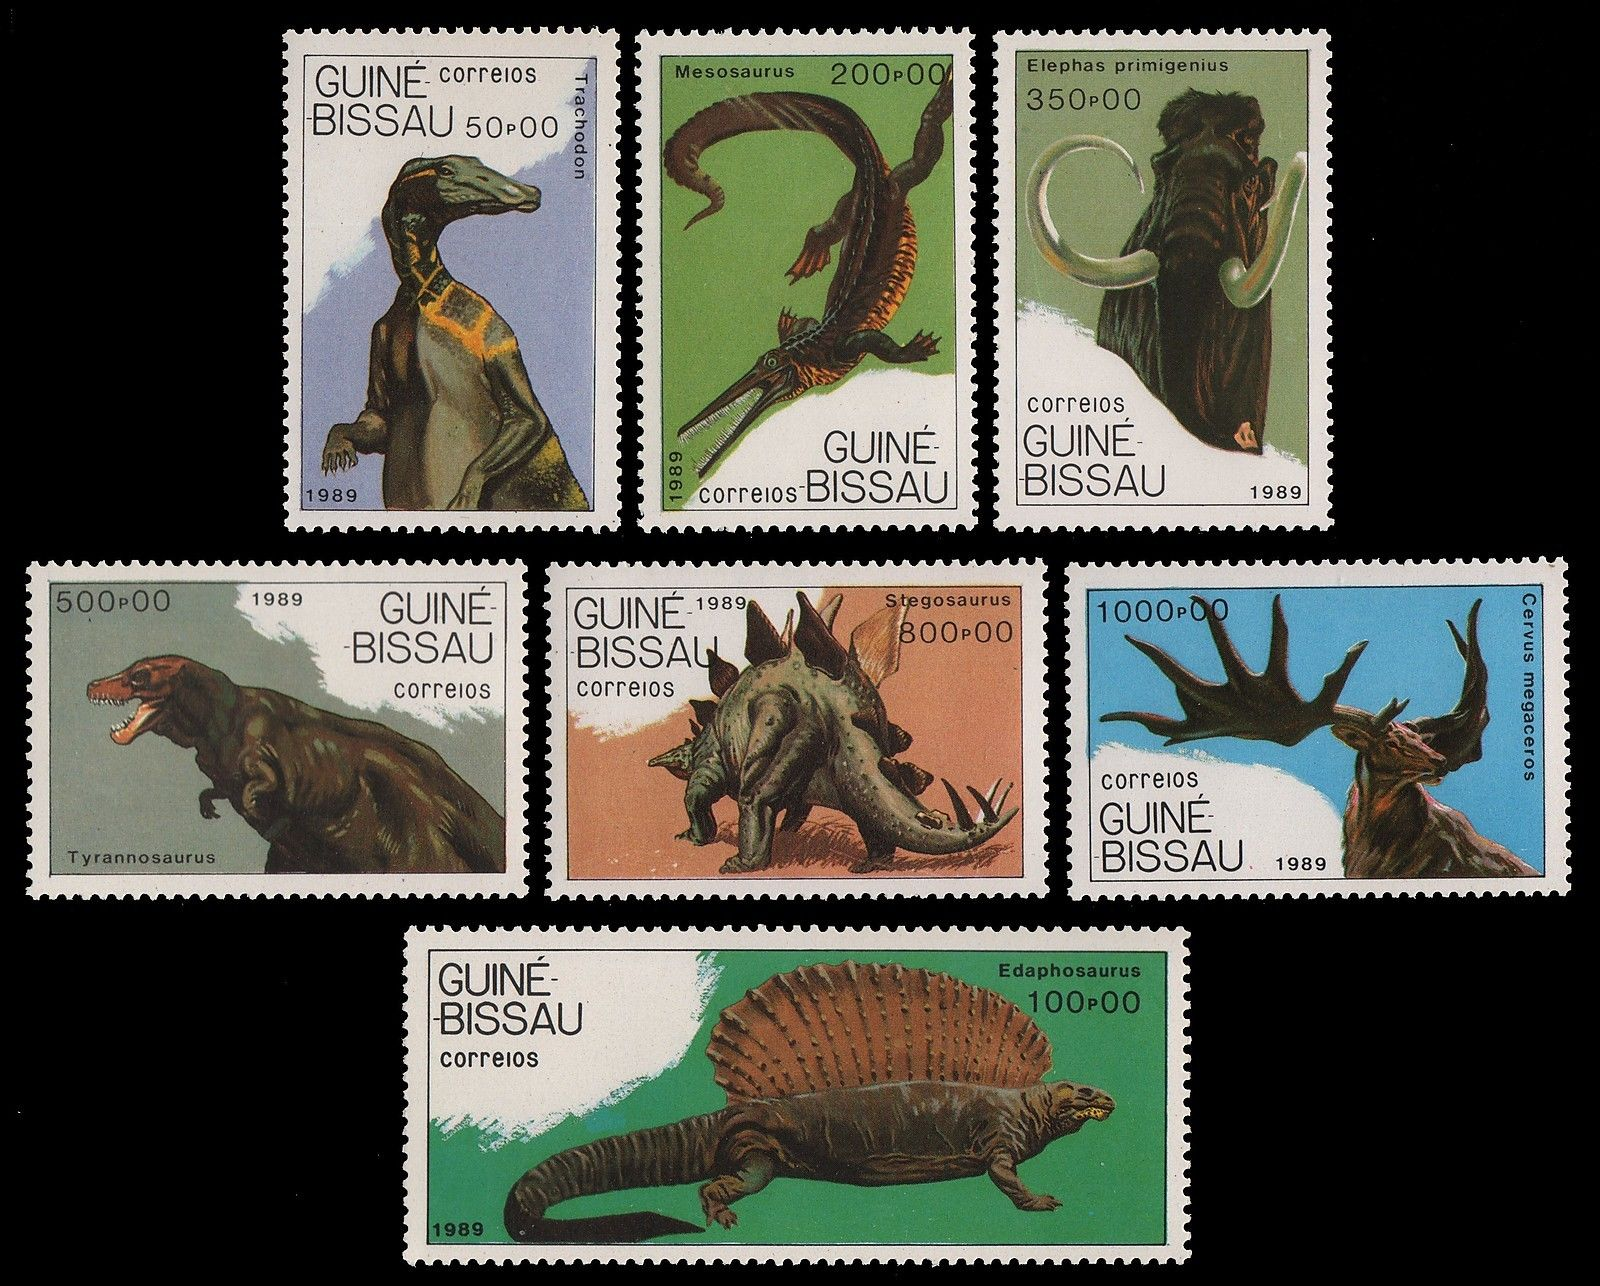 Guinea Bissau 1989 Stamps Prehistoric Dinosaurs Mammoth Reptiles